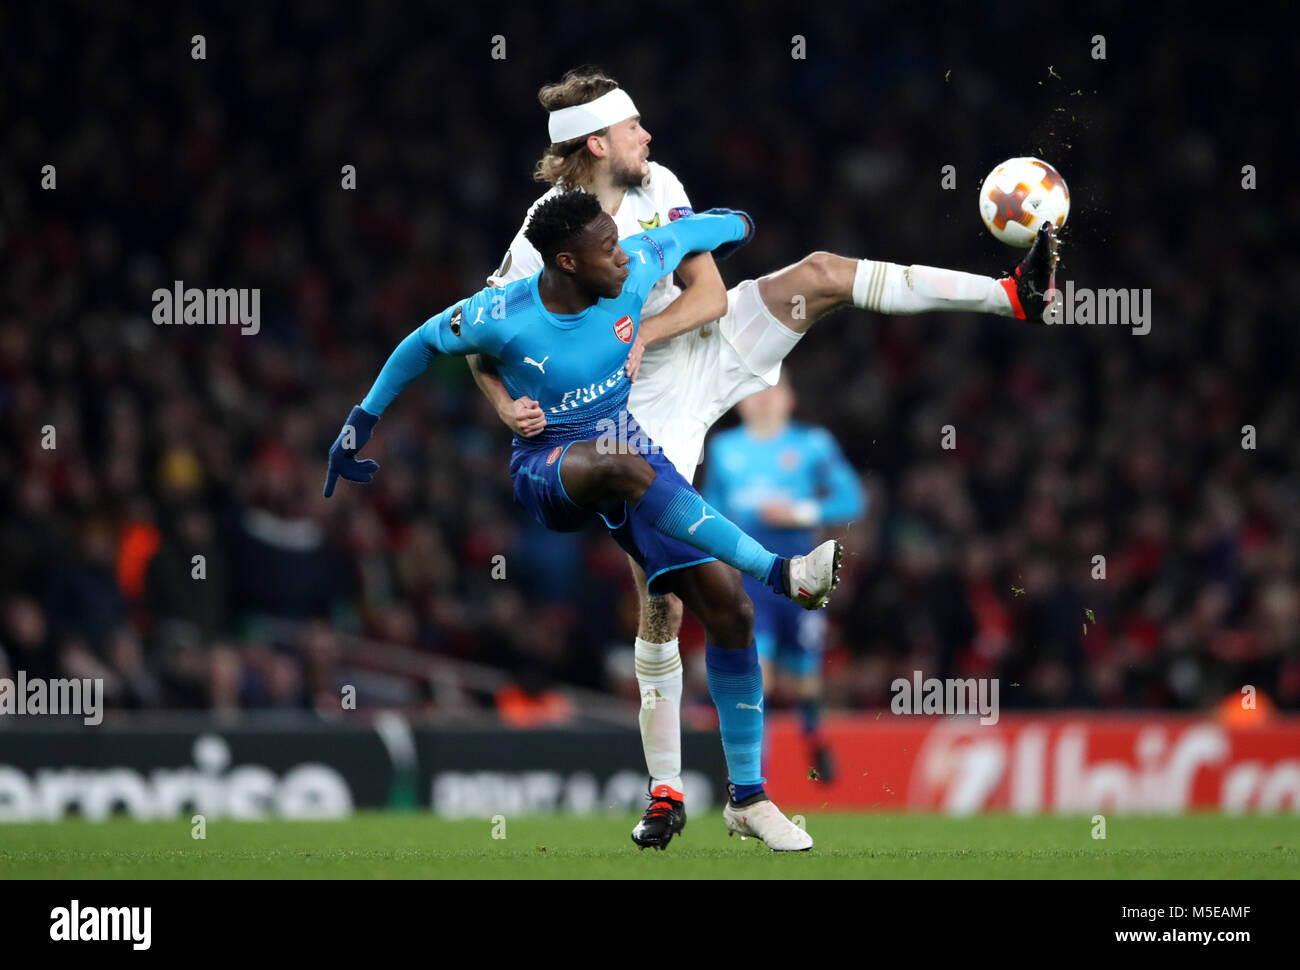 Ostersunds FK's Curtis Edwards and Arsenal's Danny Welbeck gestures on the touchline during the UEFA Europa League round of 32, second leg match at the Emirates Stadium, London. Stock Photo